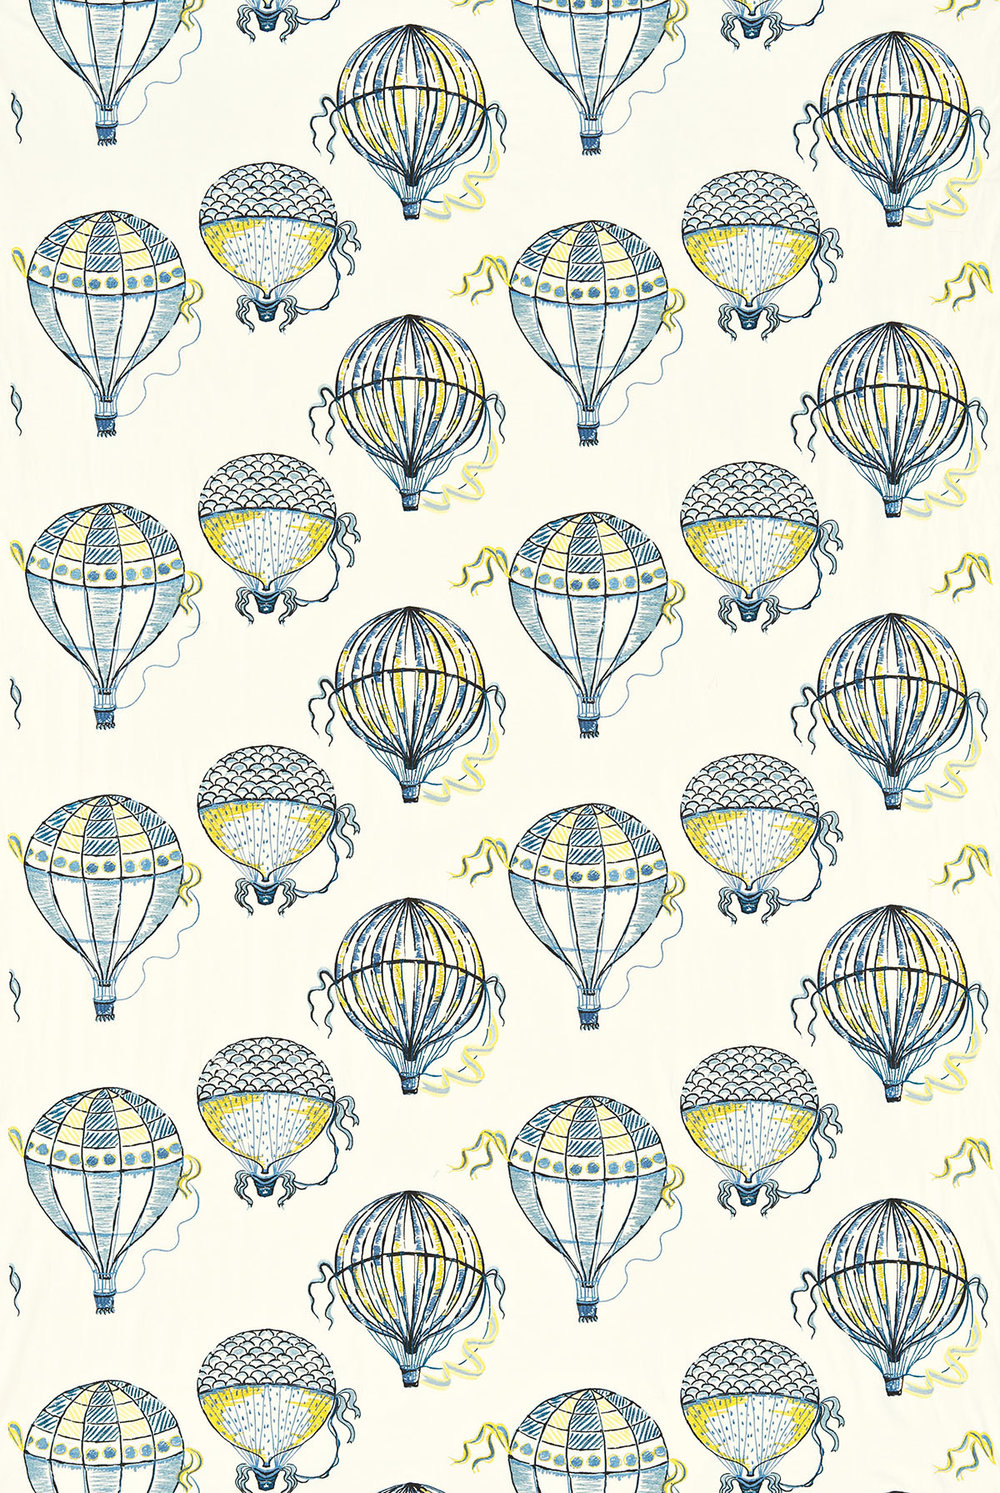 Sanderson Beautiful Balloons Blue / Yellow Fabric - Product code: 232297